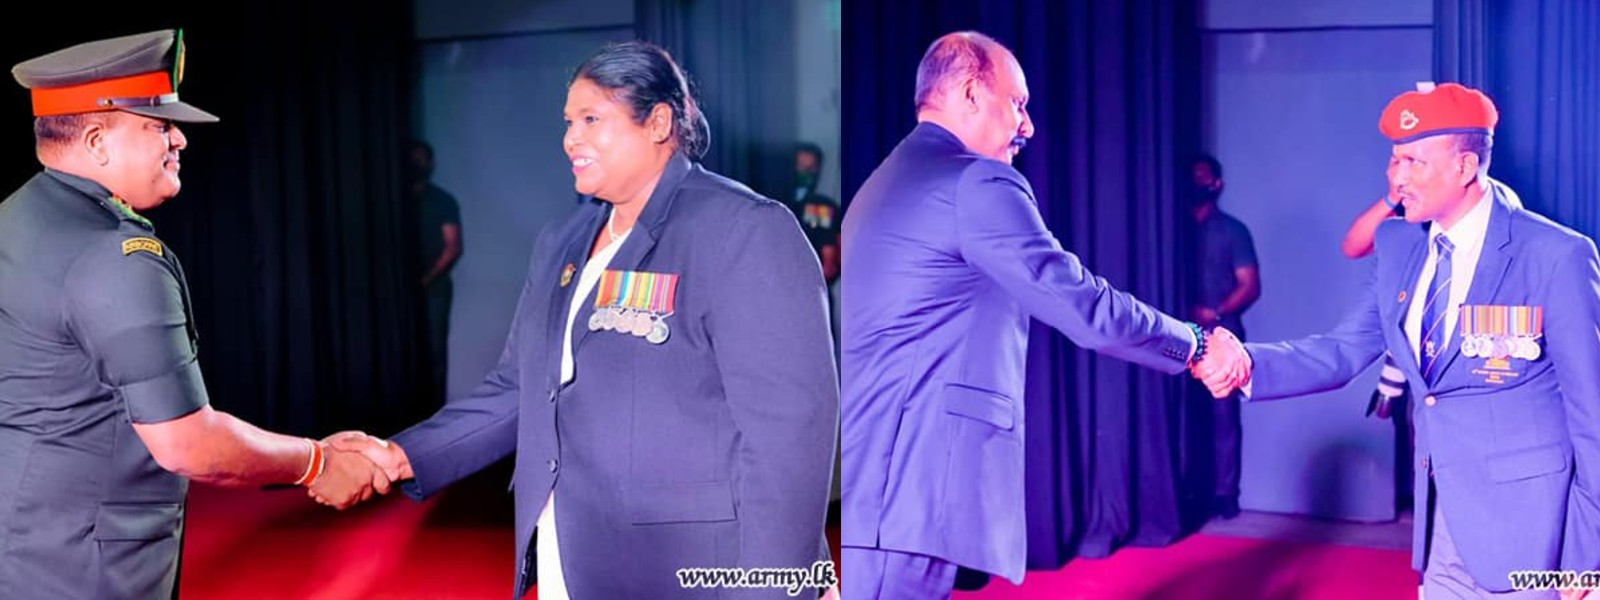 Exclusively designed military uniforms for retired tri-service personnel